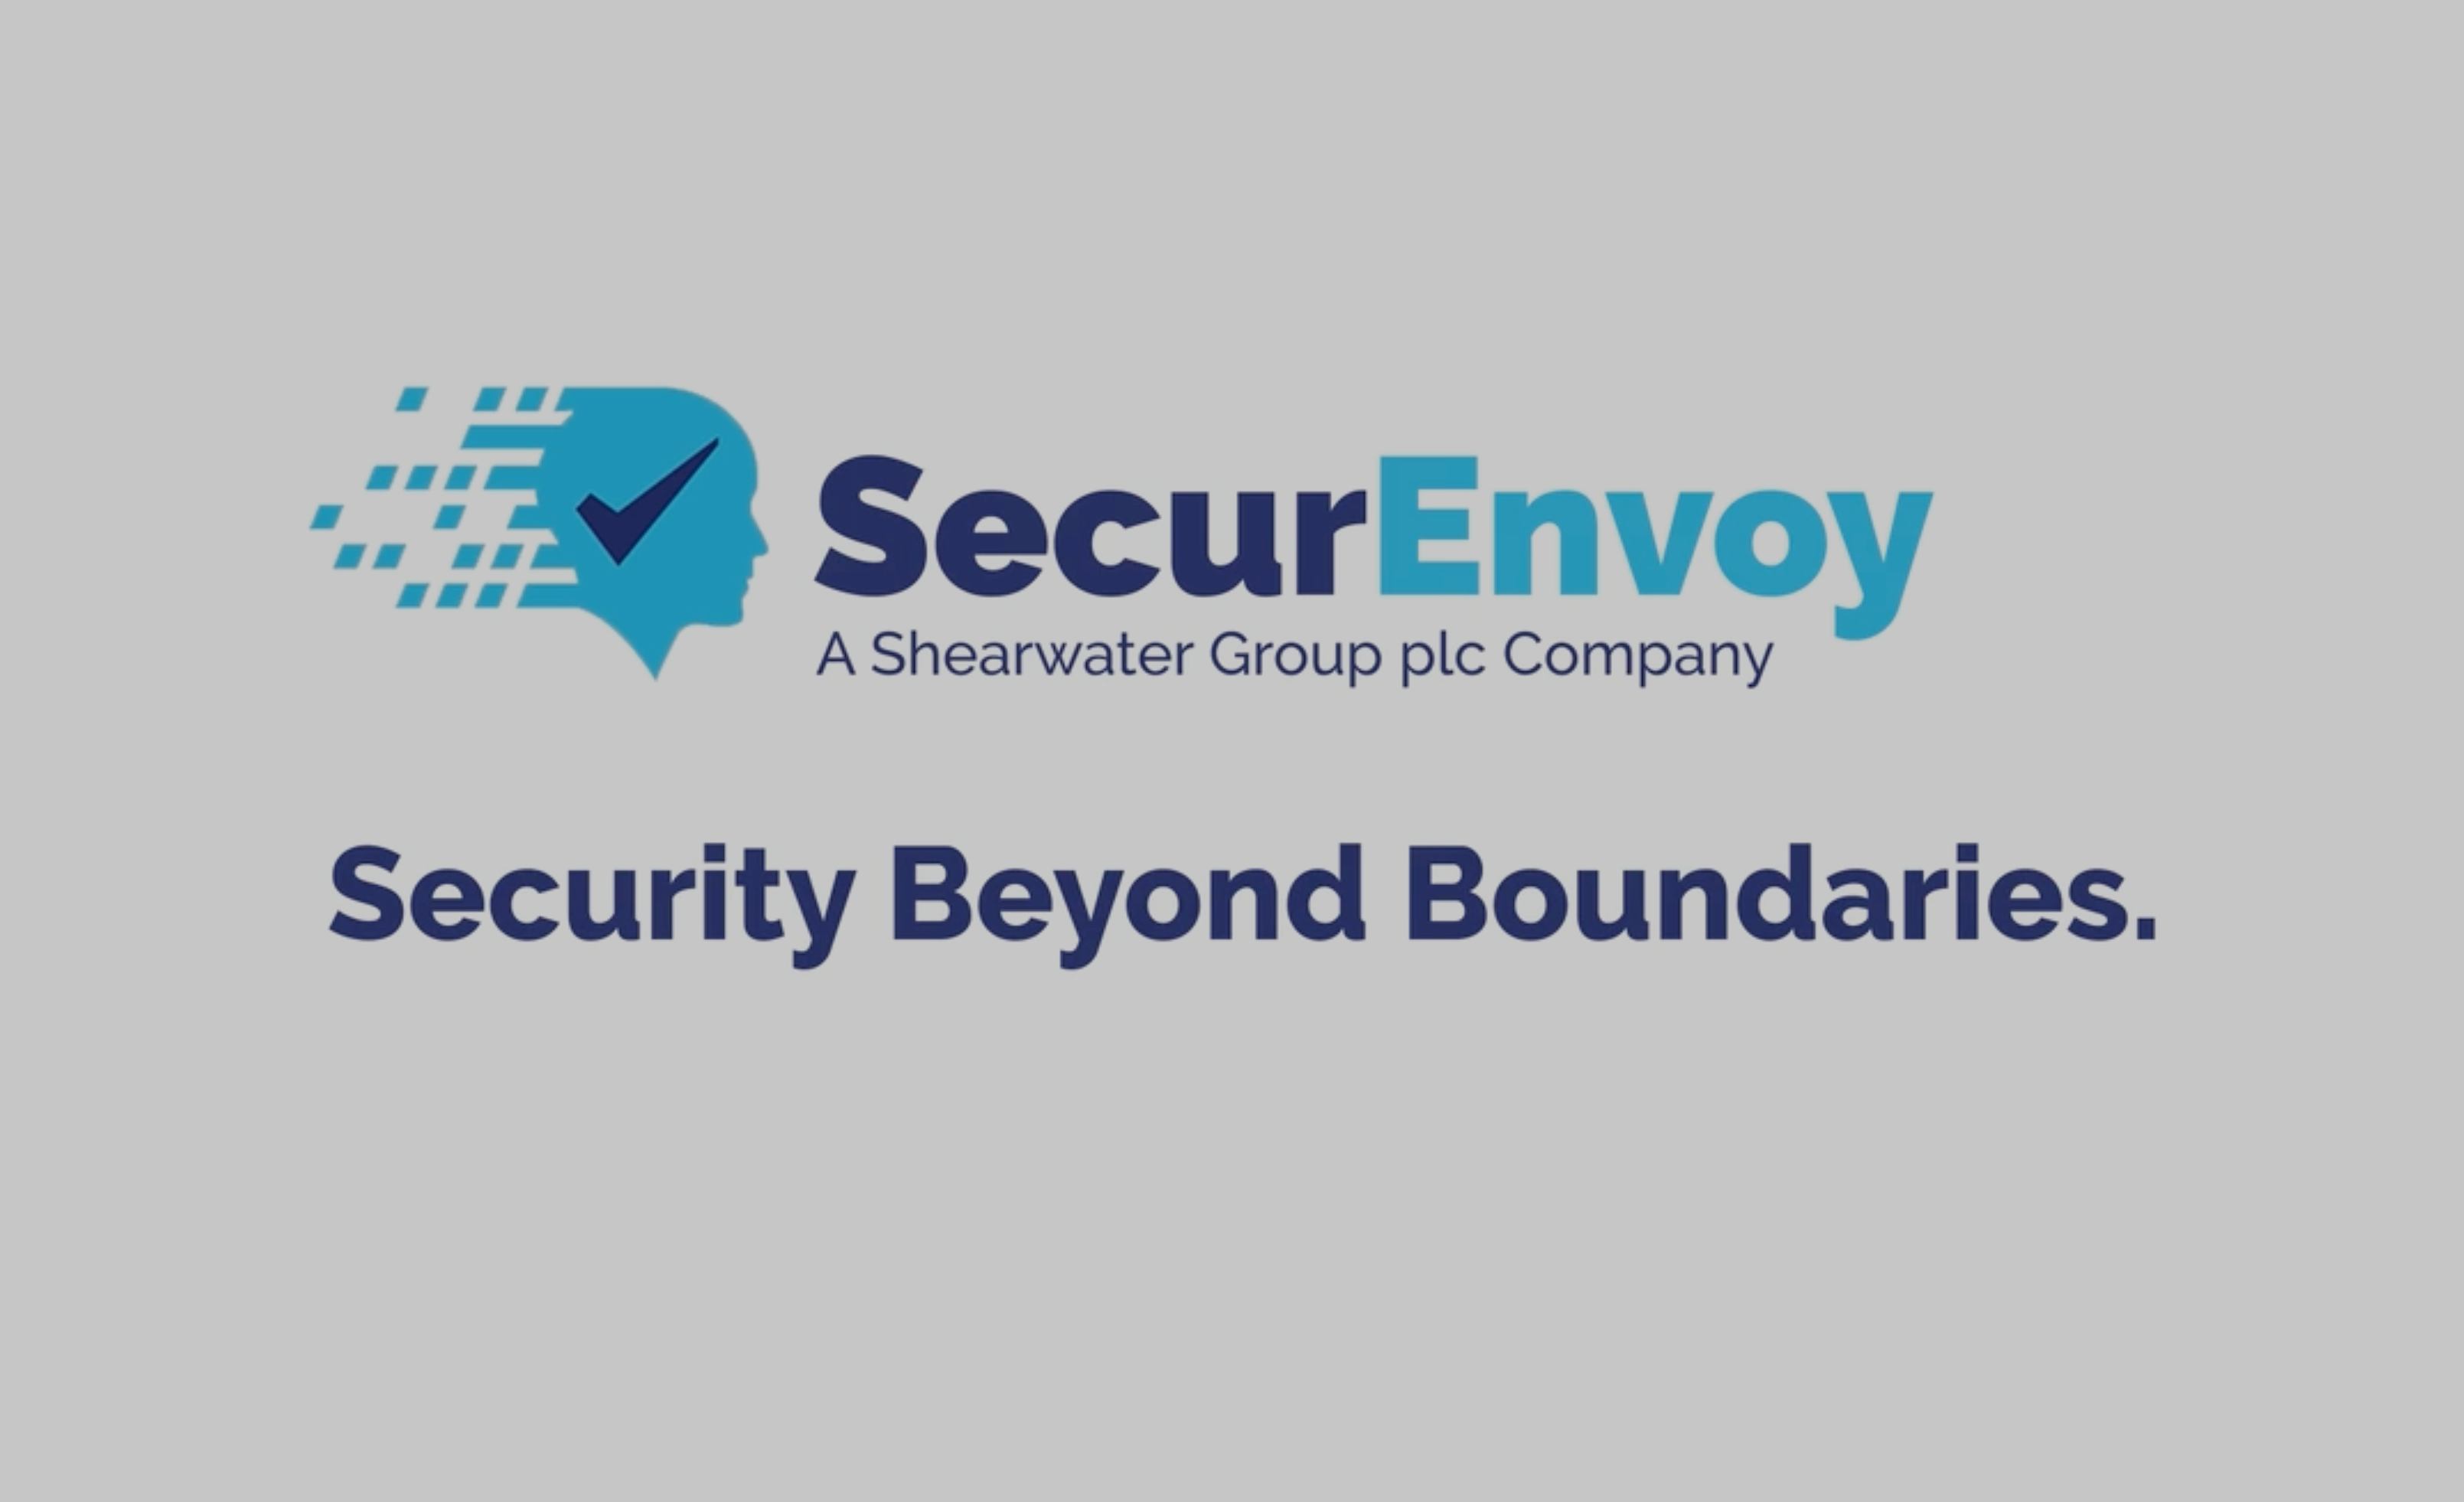 The New SecurEnvoy